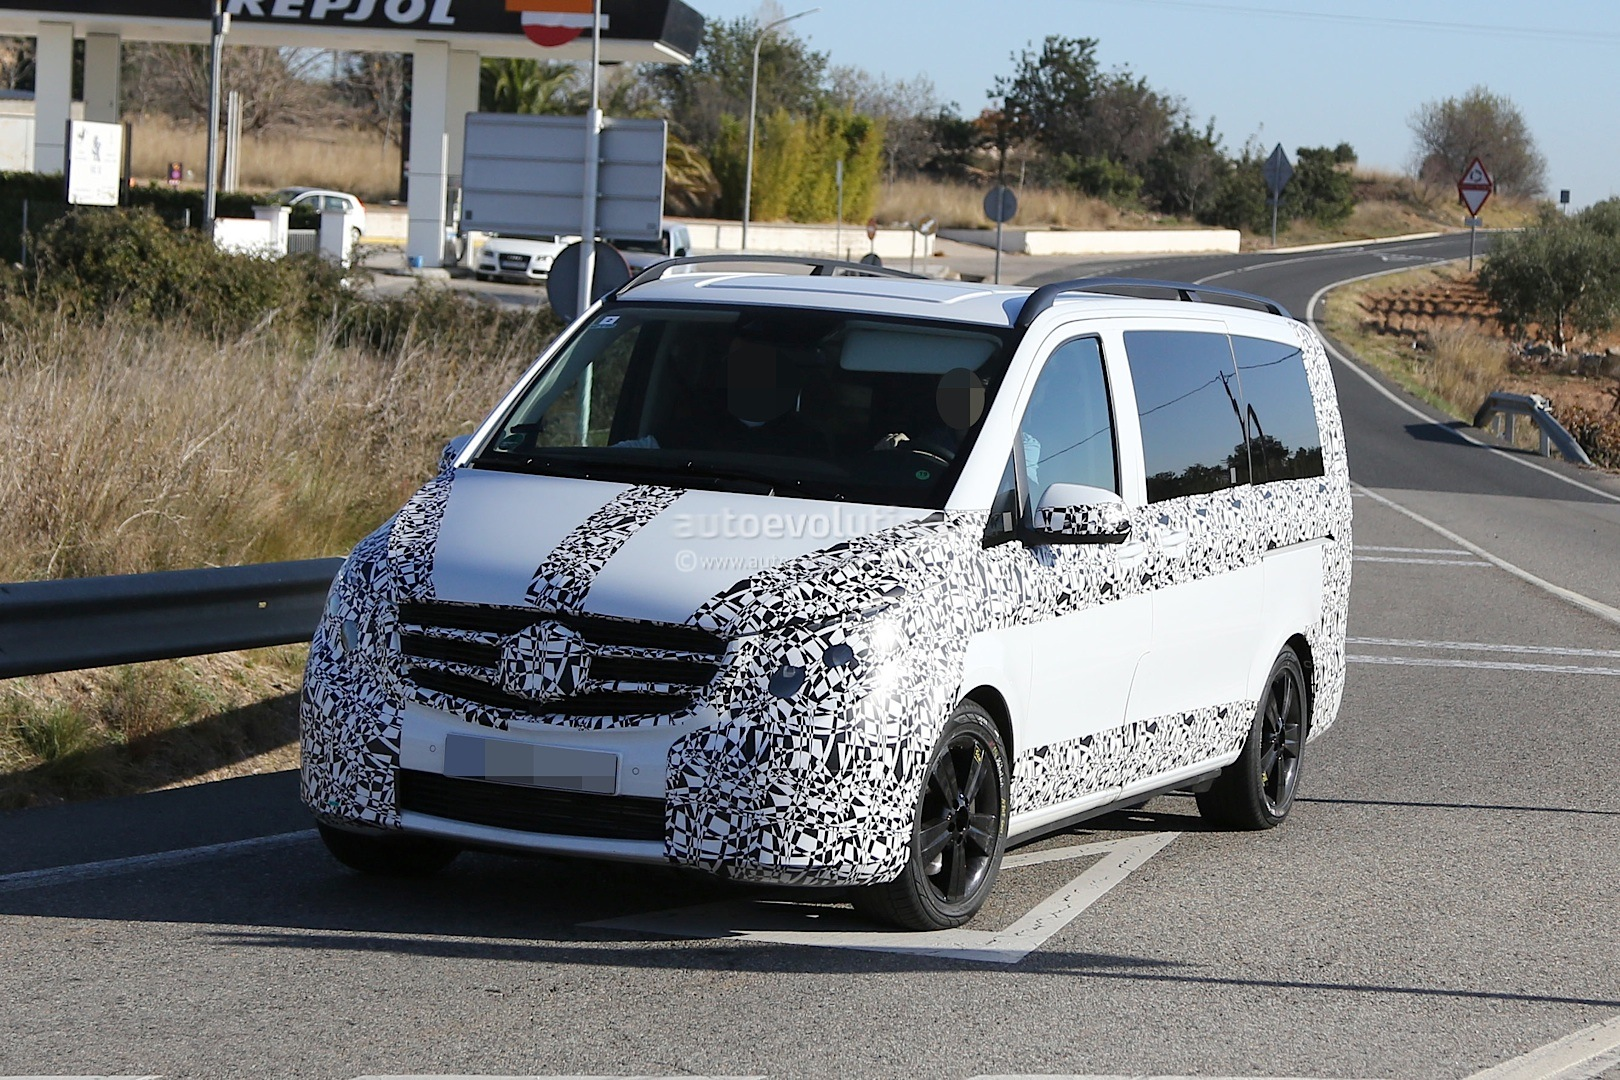 2014 - [Mercedes] Classe V/Vito - Page 4 Herd-of-2015-mercedes-benz-v-class-prototypes-caught-in-the-open-photo-gallery-1080p-2